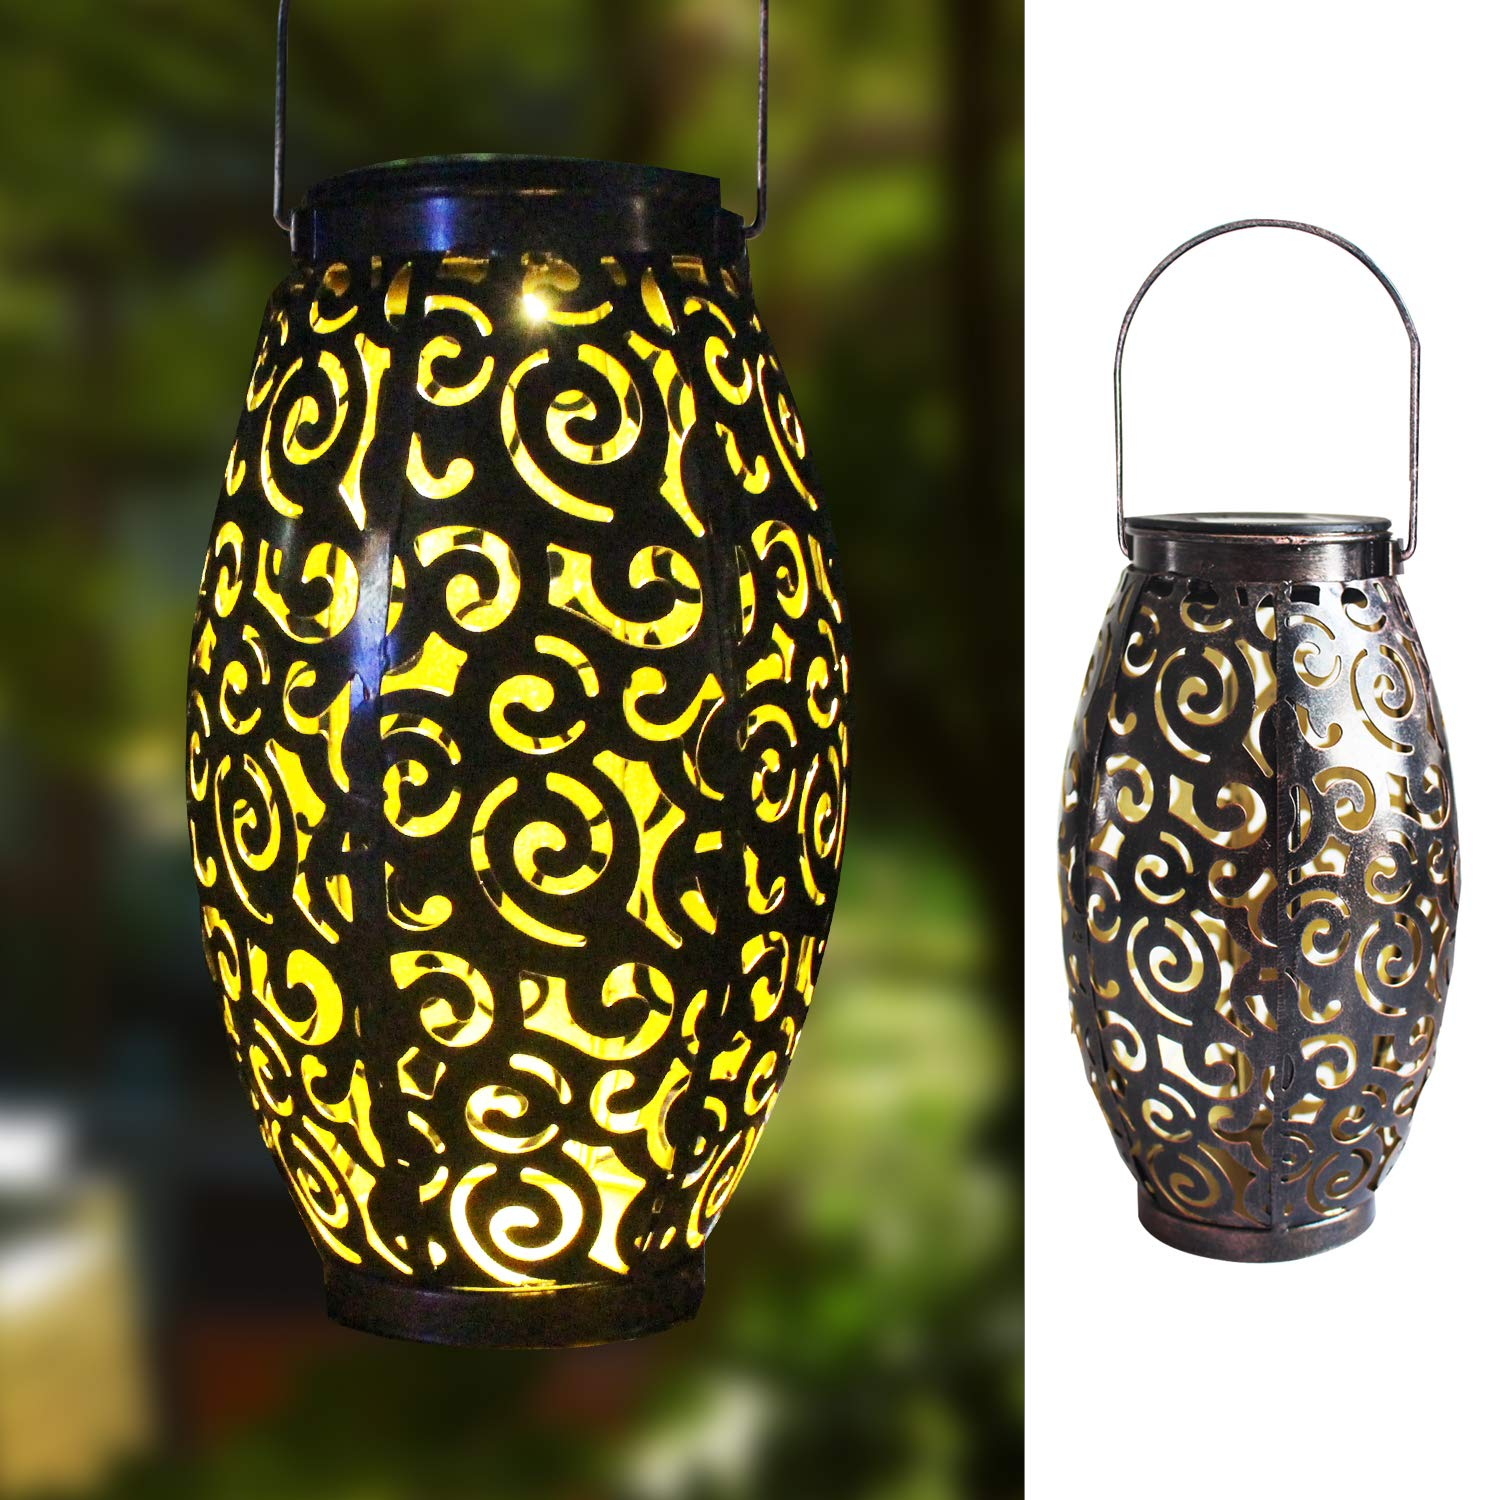 Hanging Solar Lights Outdoor Solar Lanterns Retro Hanging Solar Lantern Garden Outdoor Lights with Handle, Metal Waterproof LED Table Lamp Decorative for Porch Garden Patio Backyard Courtyard Pathway by YiaMia